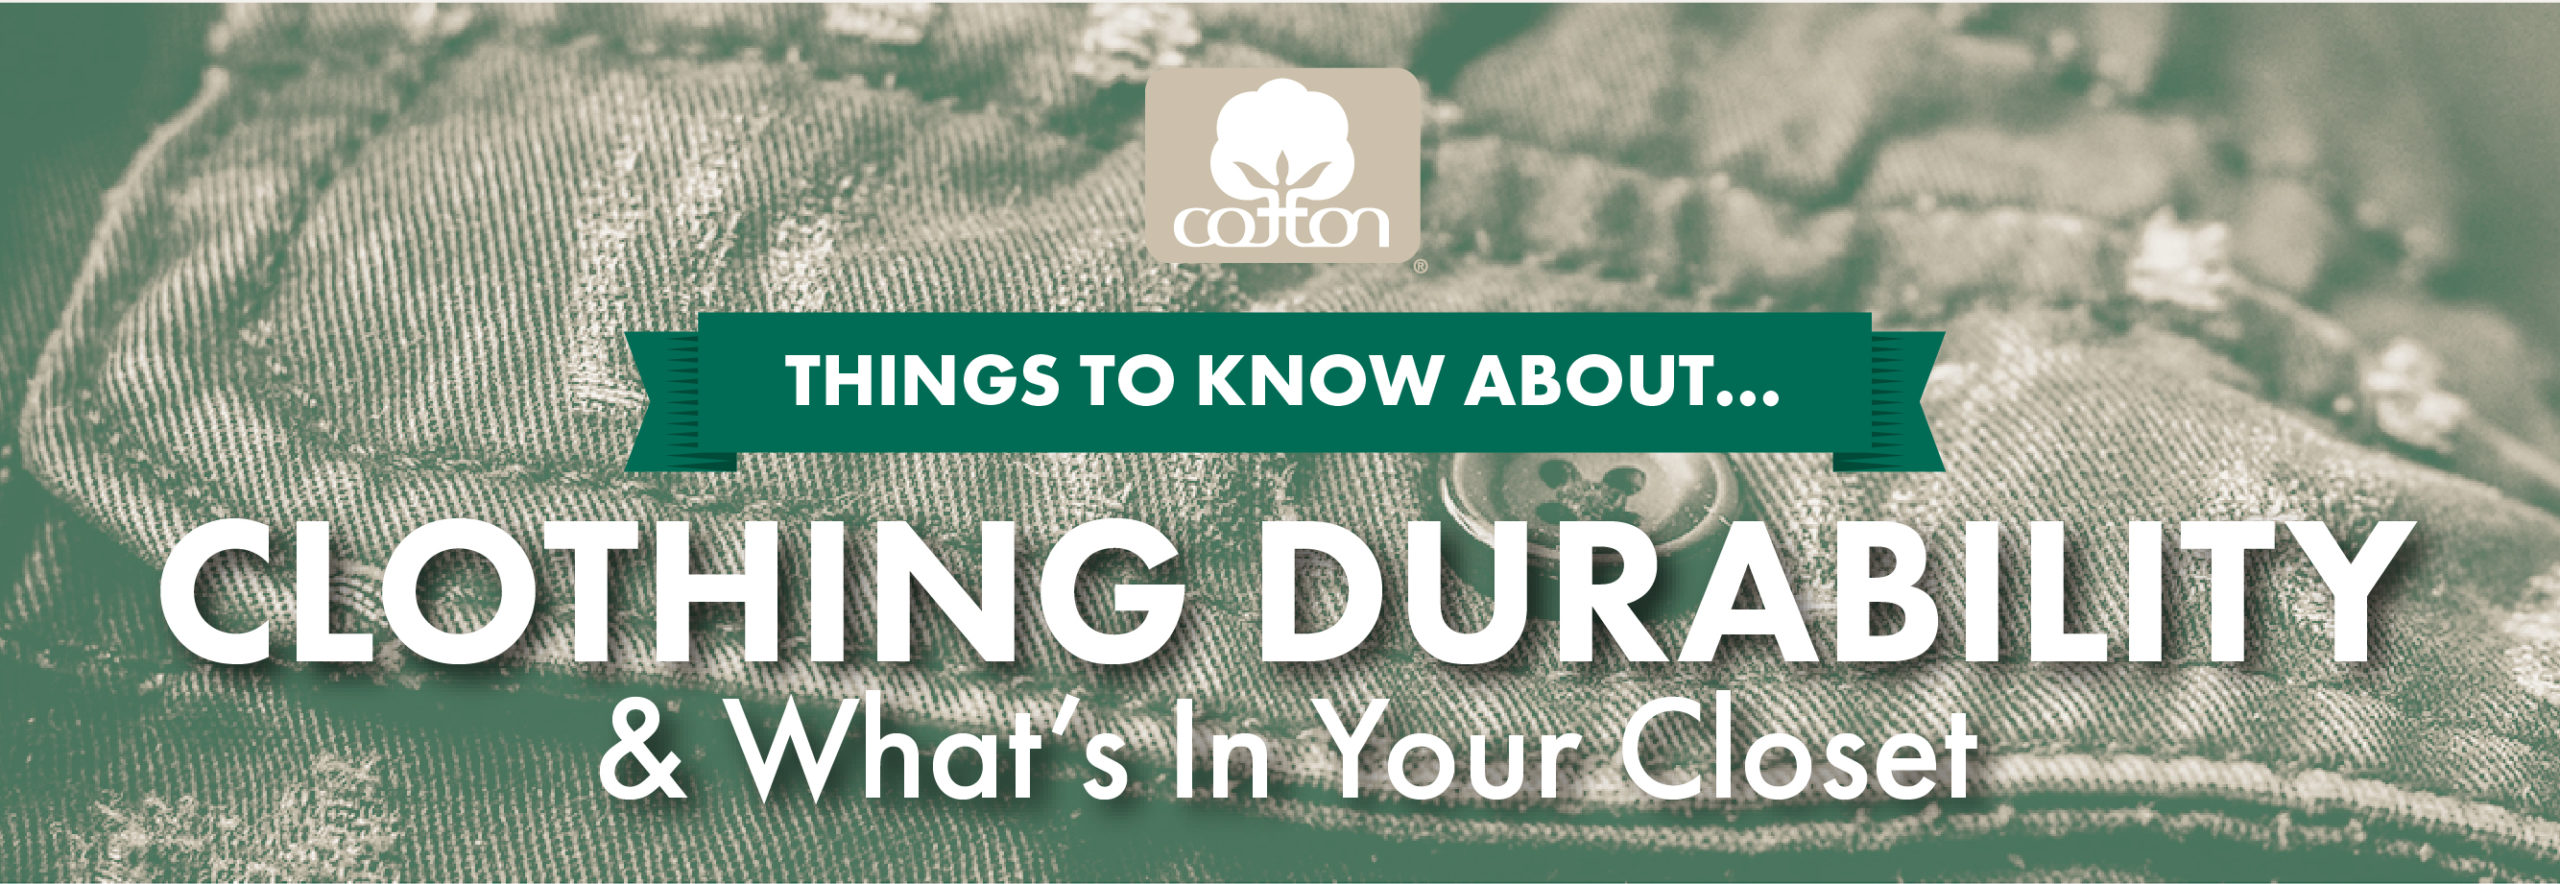 Clothing Durability & What's In Your Closet